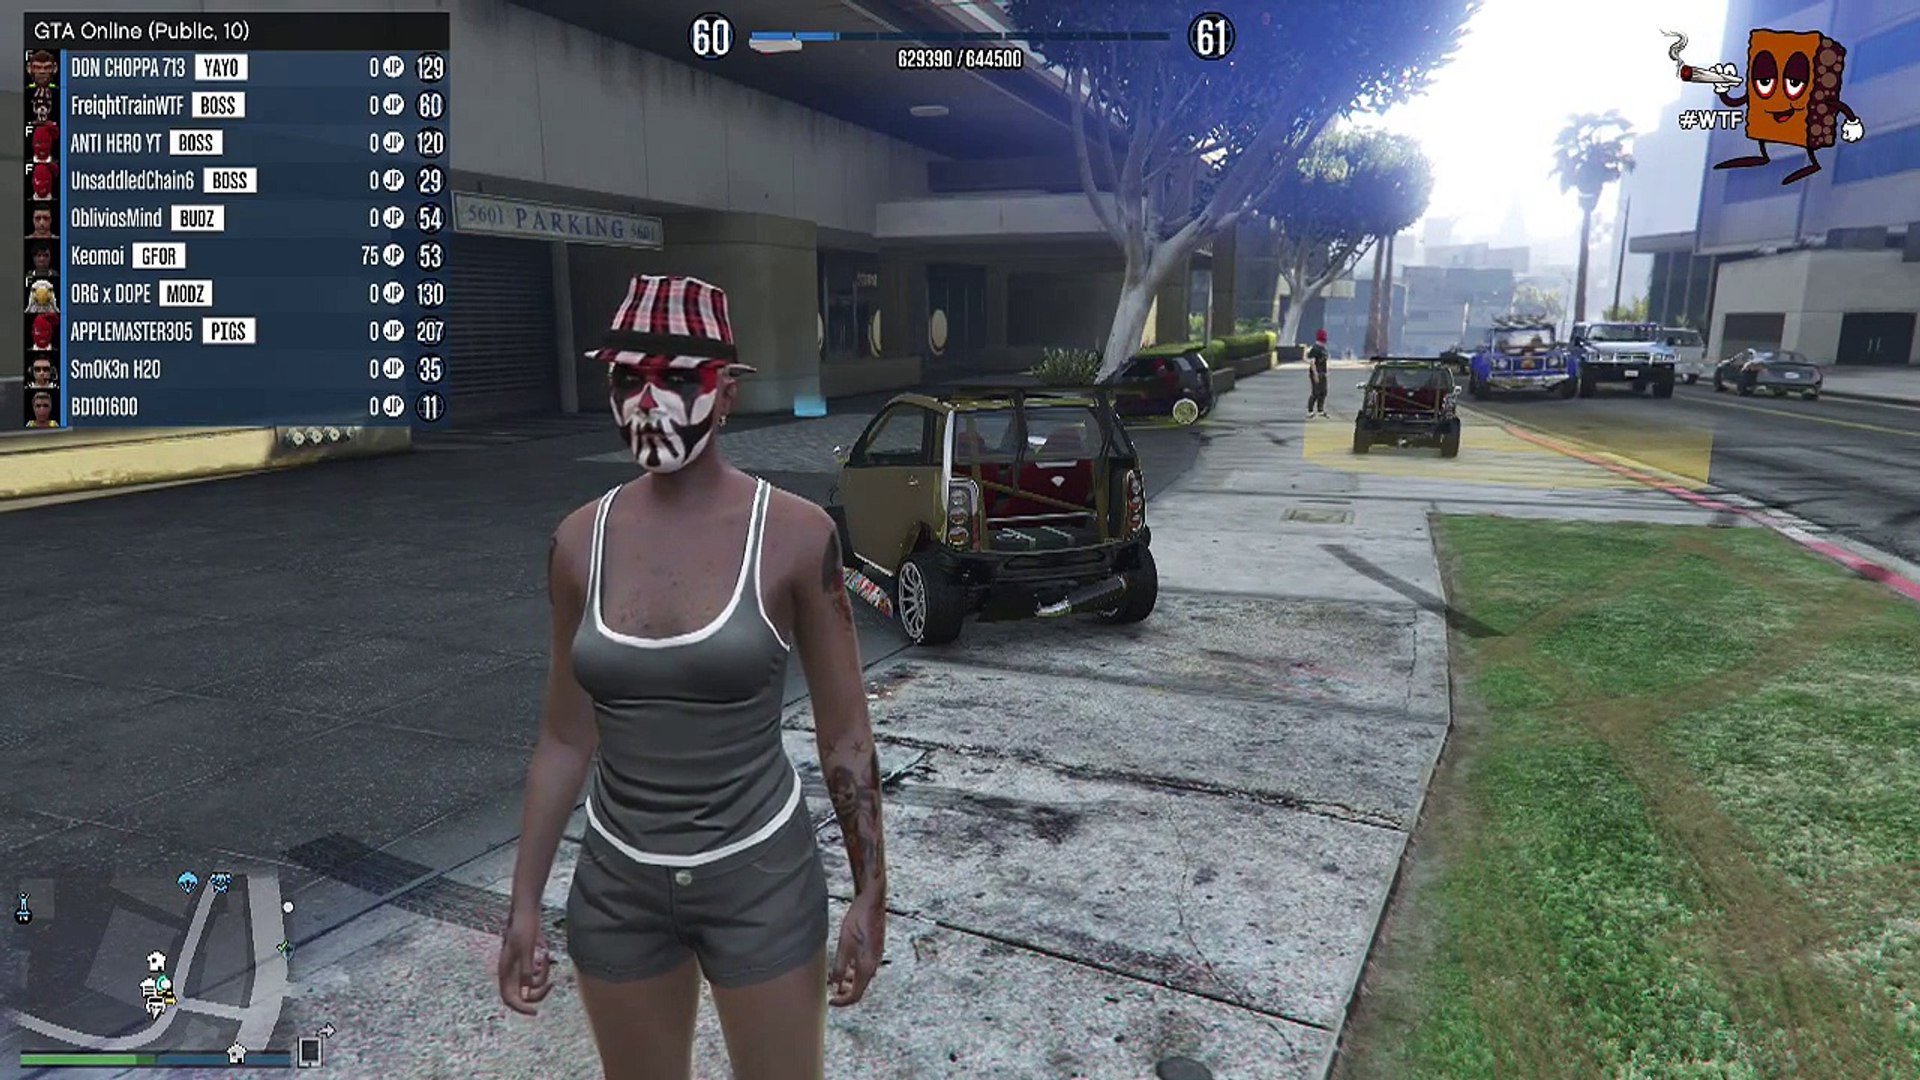 (PATCHED) GTA 5 glitches Give cars to friends glitch.money glitch patch 1.22(Xbox one, PS4)